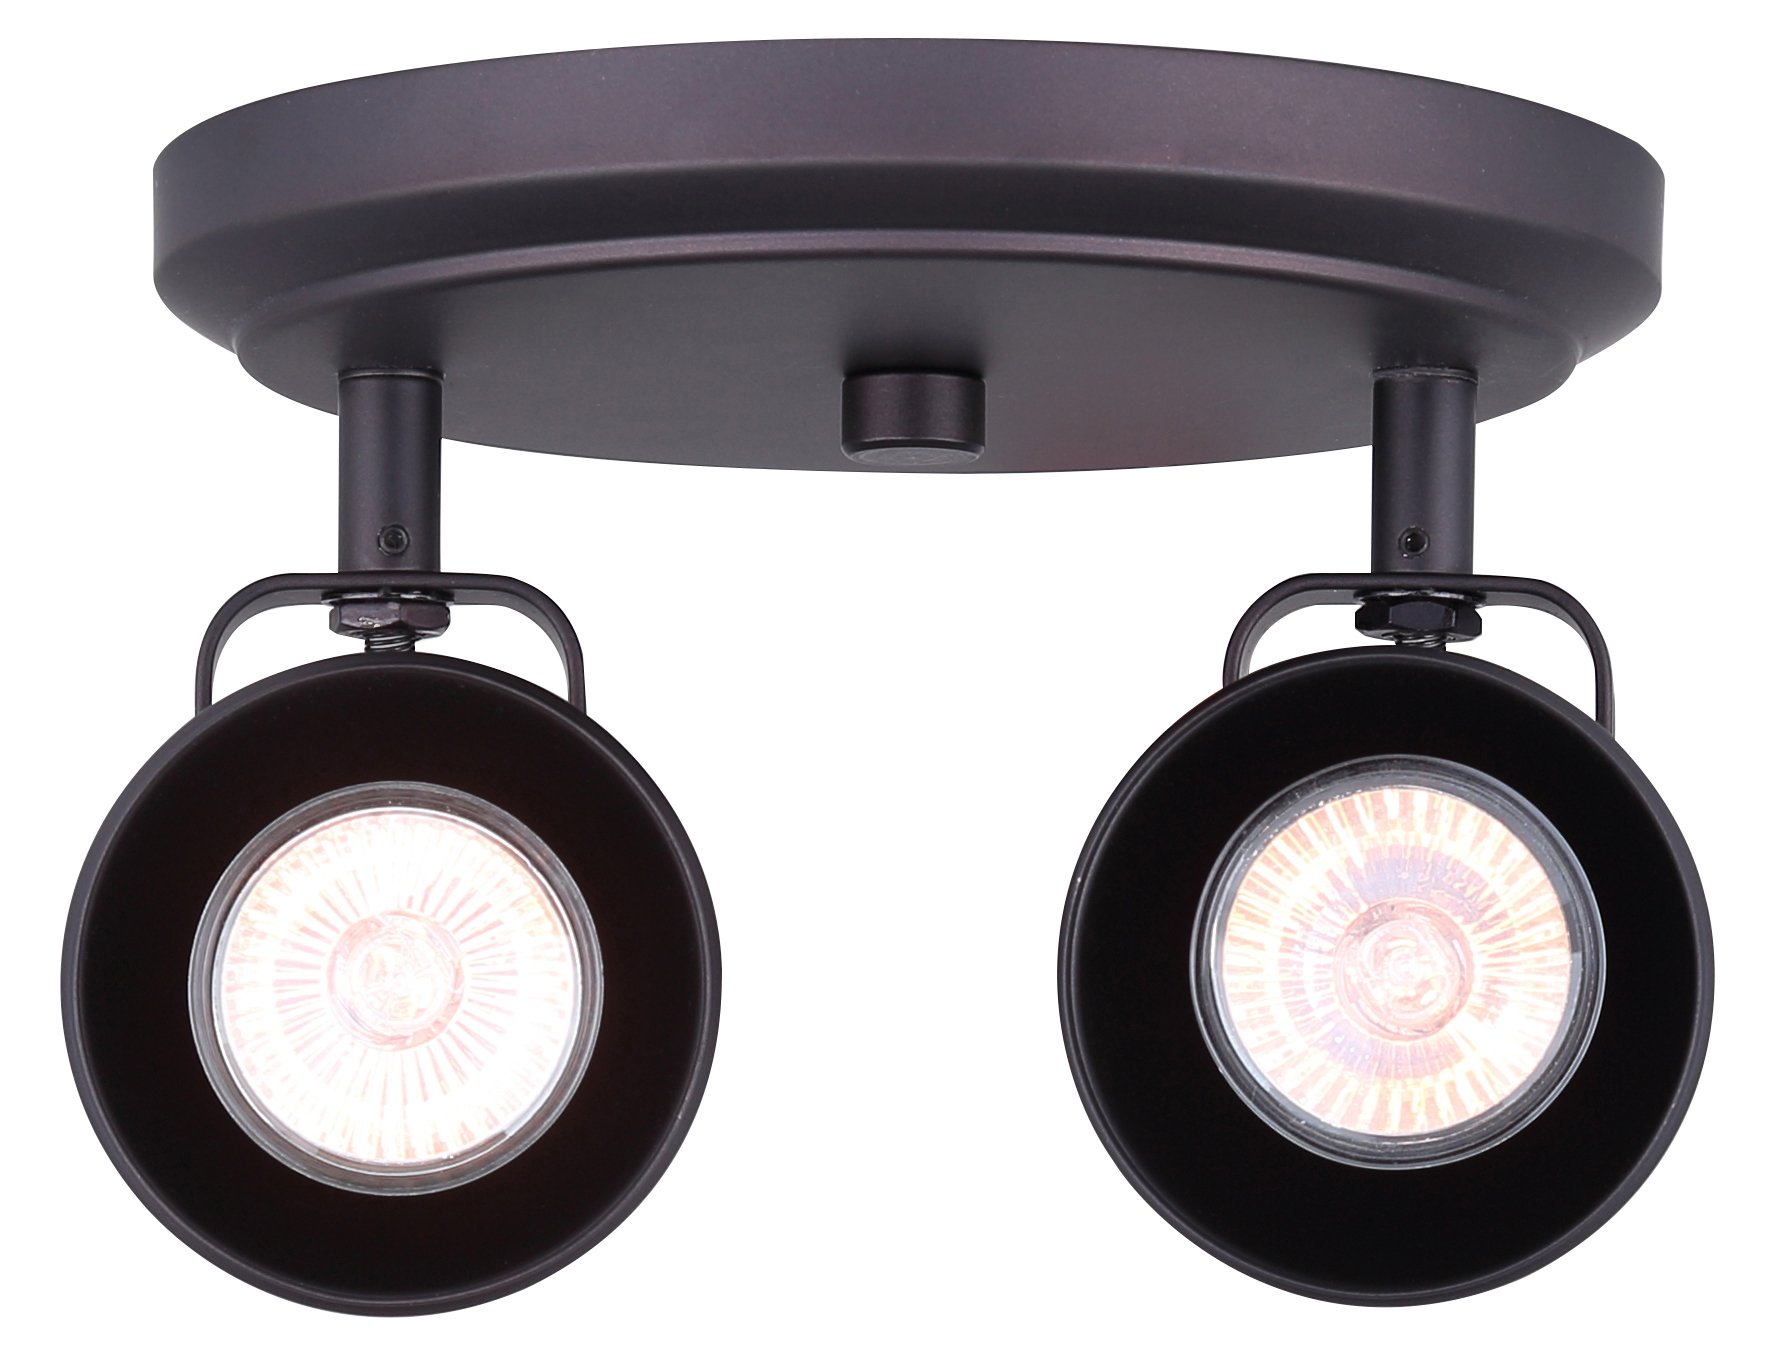 CANARM ICW622A02ORB10 LTD Polo 2 Light Ceiling/Wall, Oil Rubbed Bronze with Adjustable Heads